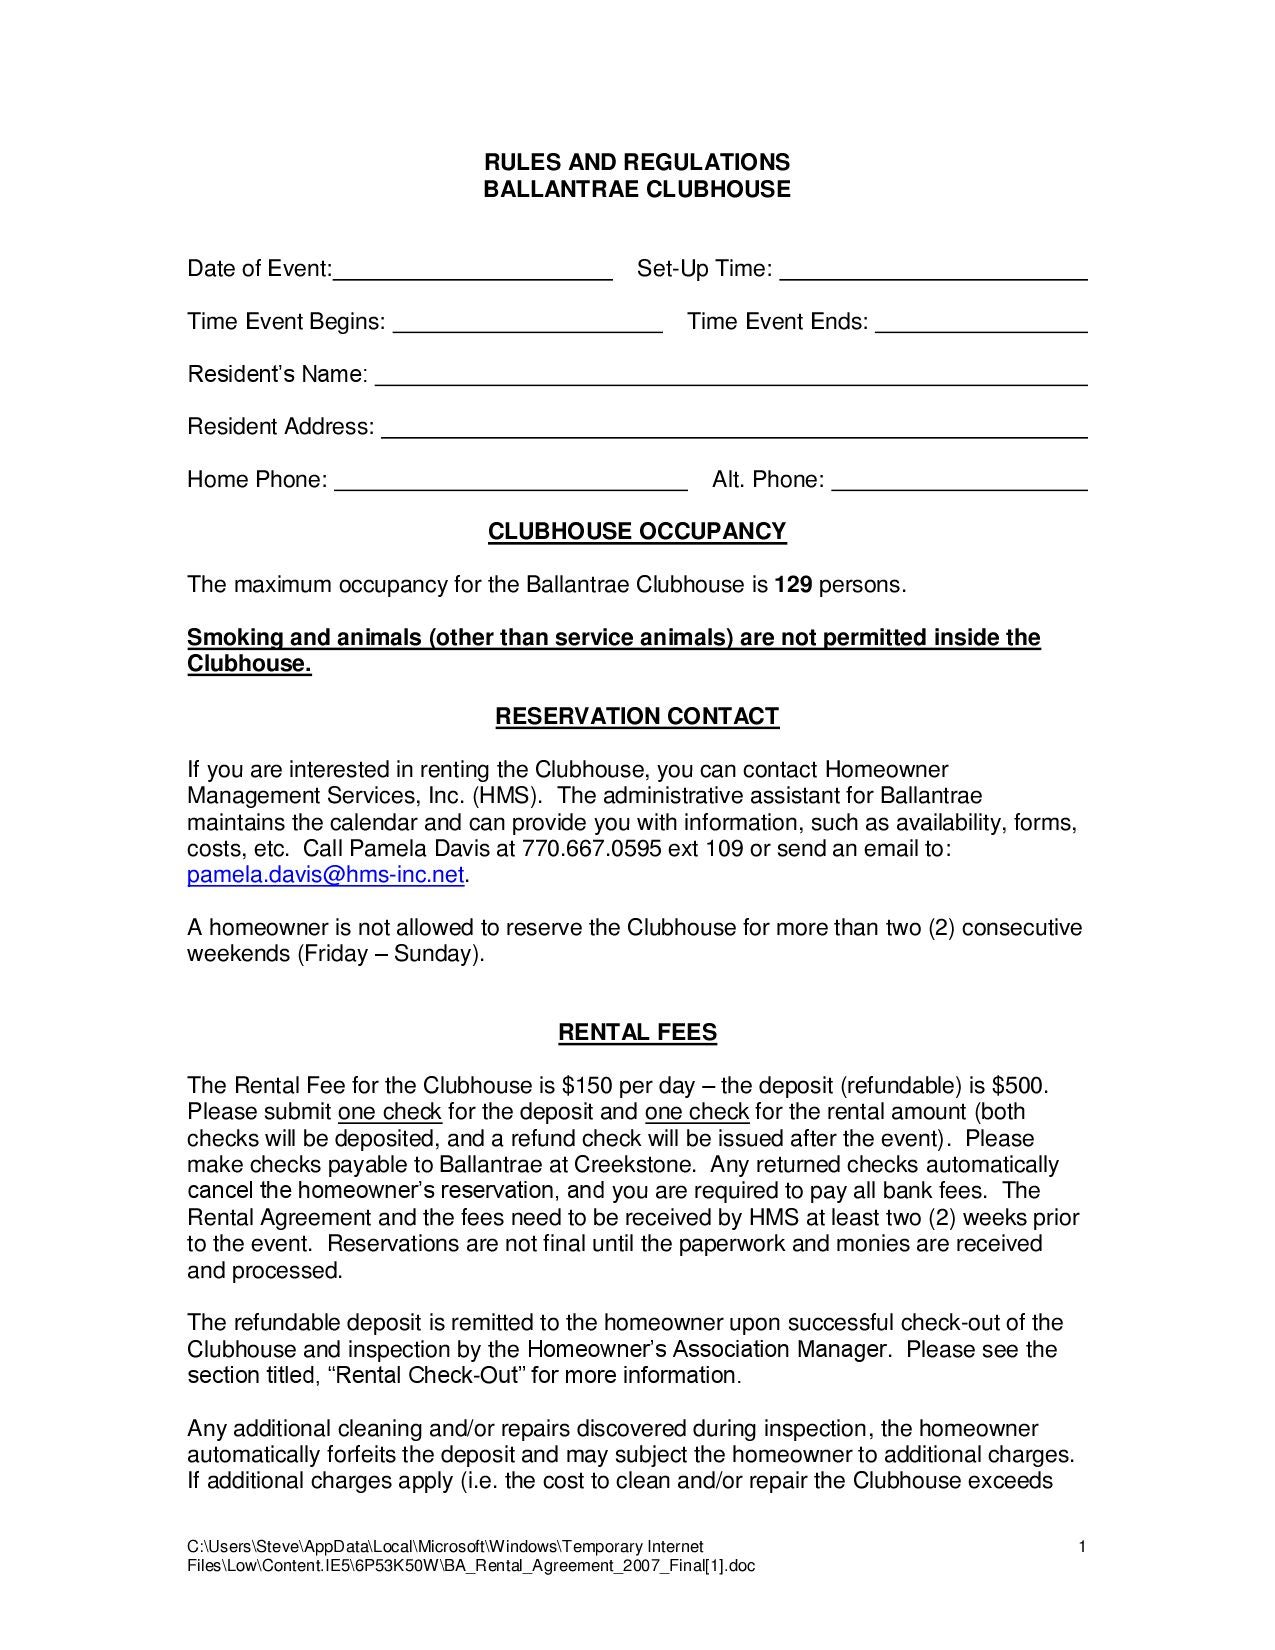 Clubhouse Rental Agreement By Stephen Page Issuu